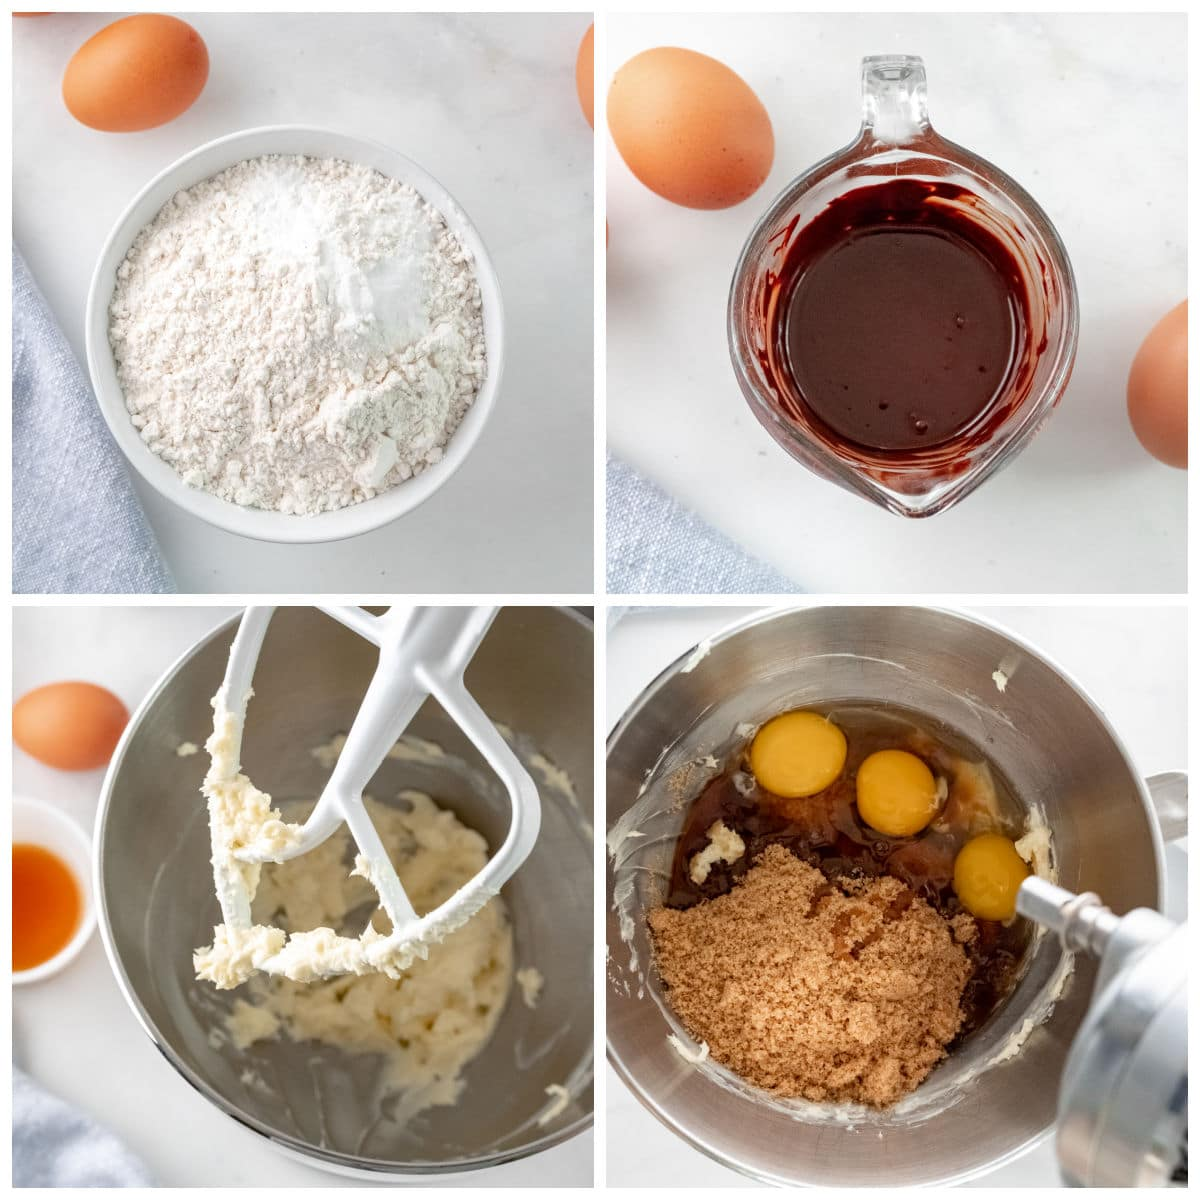 several bowls with flour, melted chocolate, butter being blended and eggs being added to mixer bowl